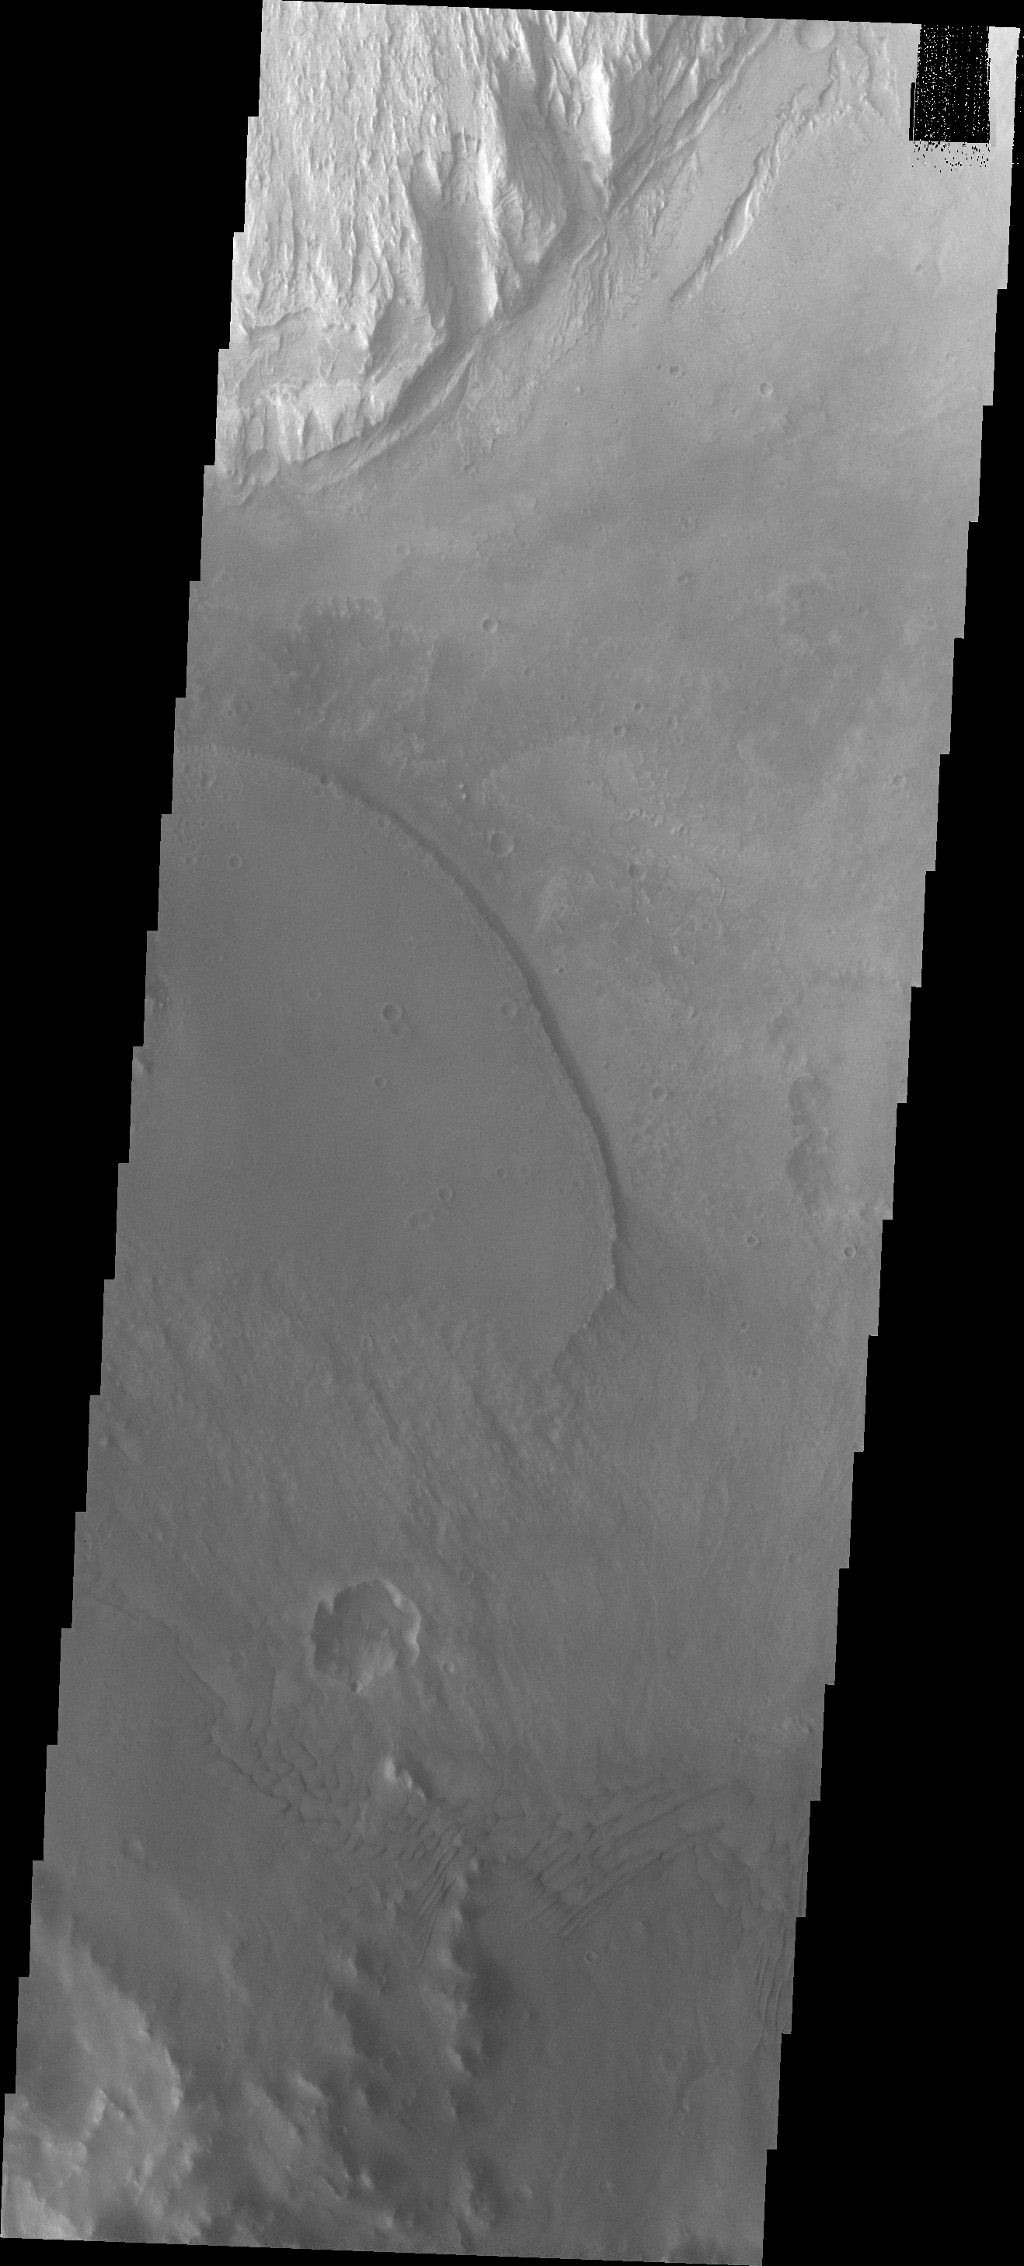 Moving eastward across the southern part of Gale Crater, this image from NASA's Mars Odyssey spacecraft shows more dark material deposited from the large channel through the SW rim of crater; material has a sharp edge where it overlays the crater floor.